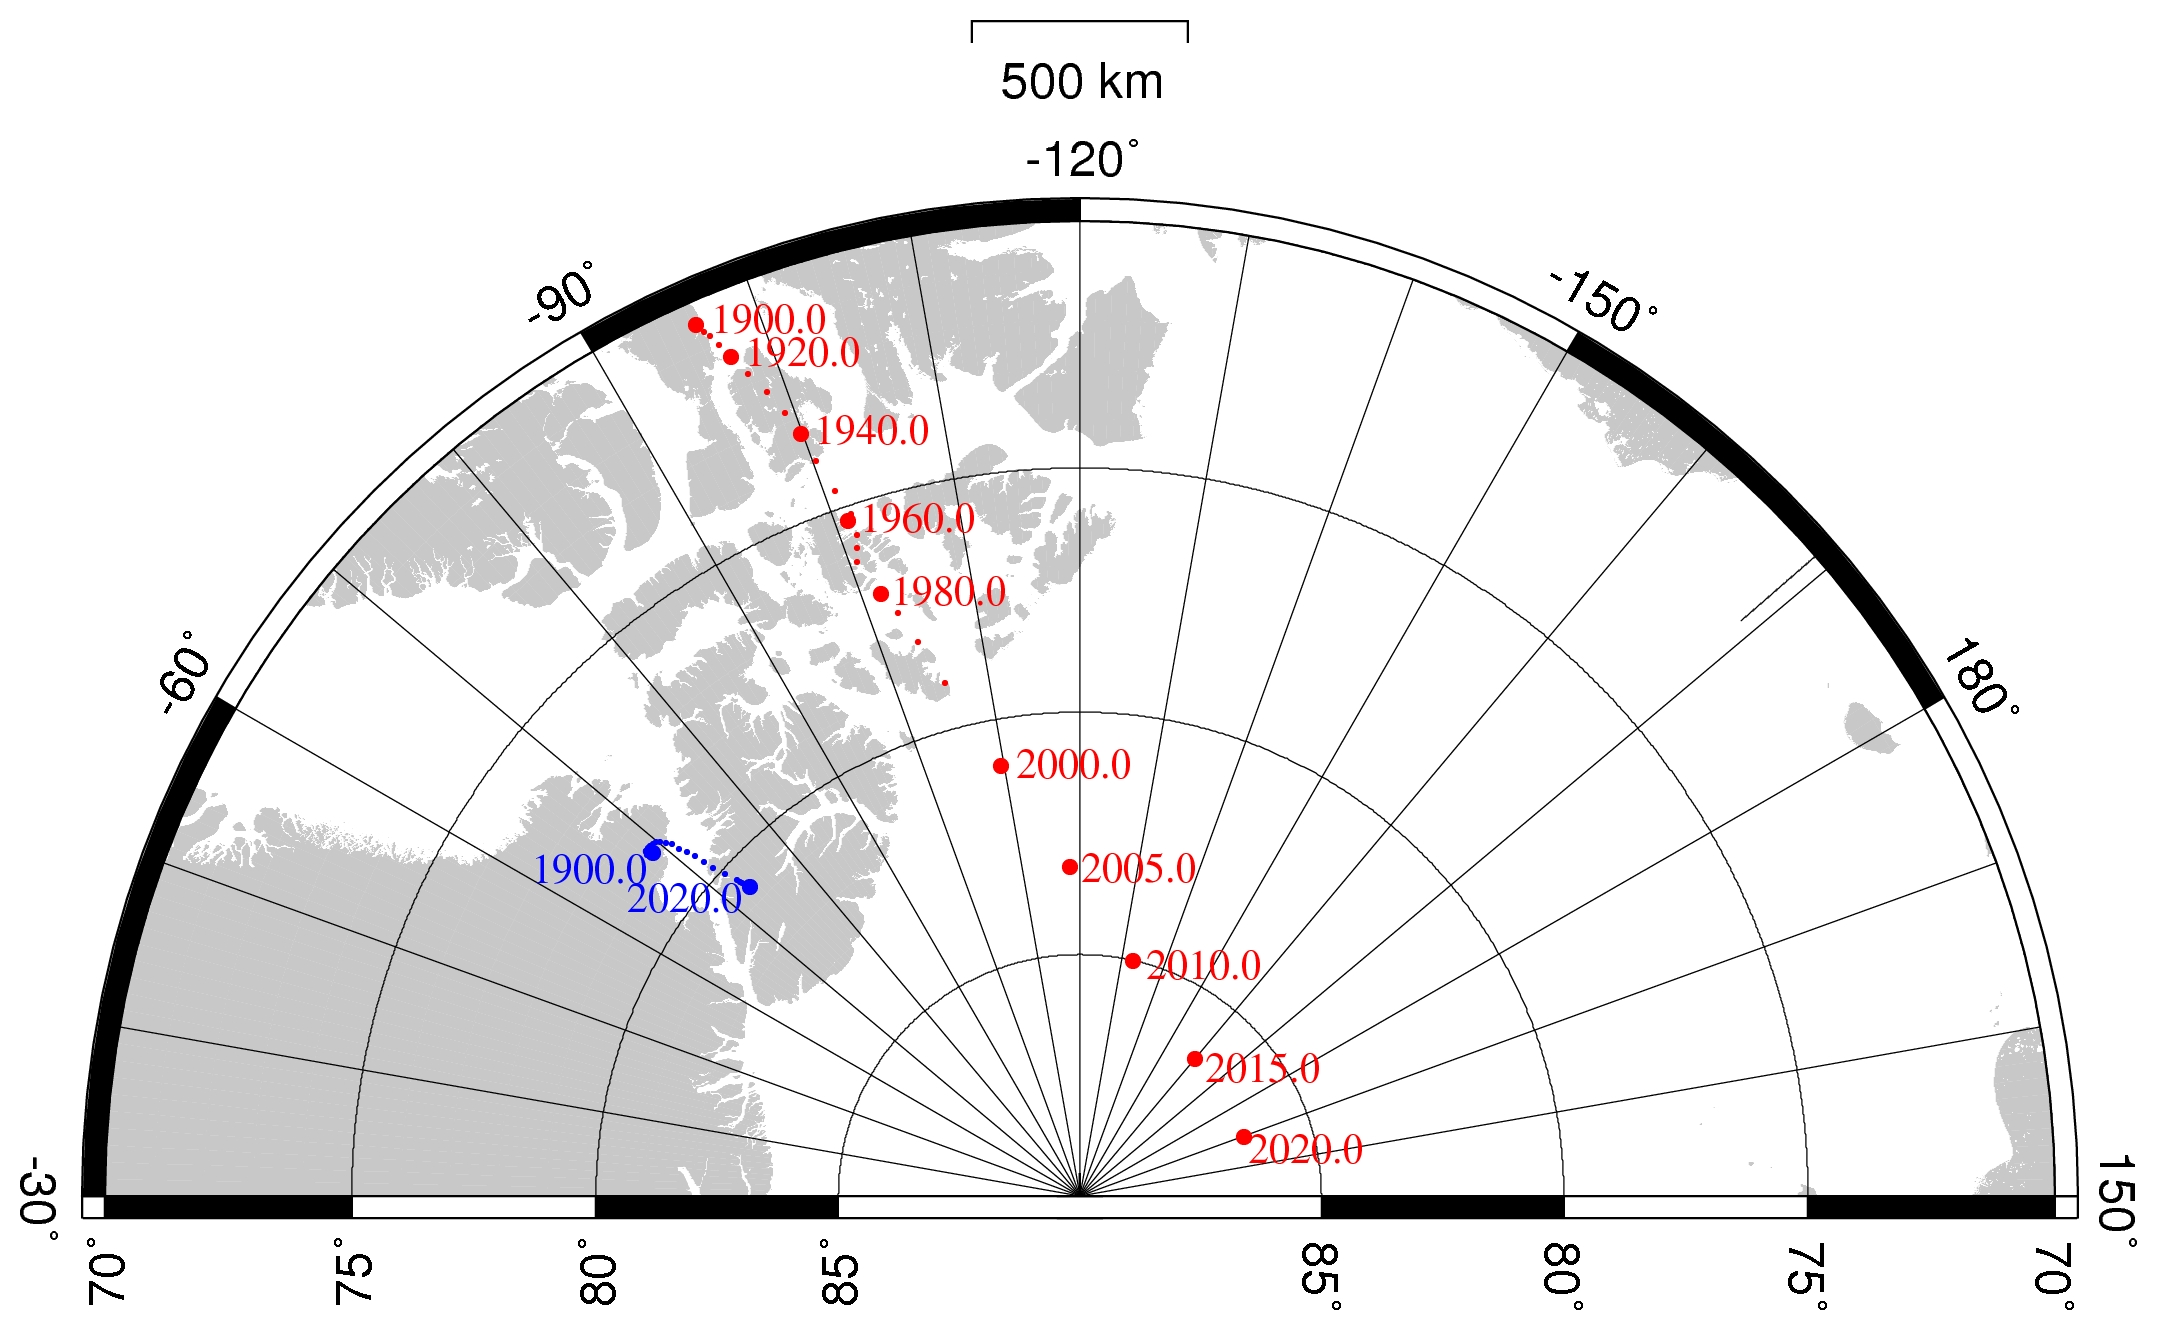 North Magnetic Pole Location 2014